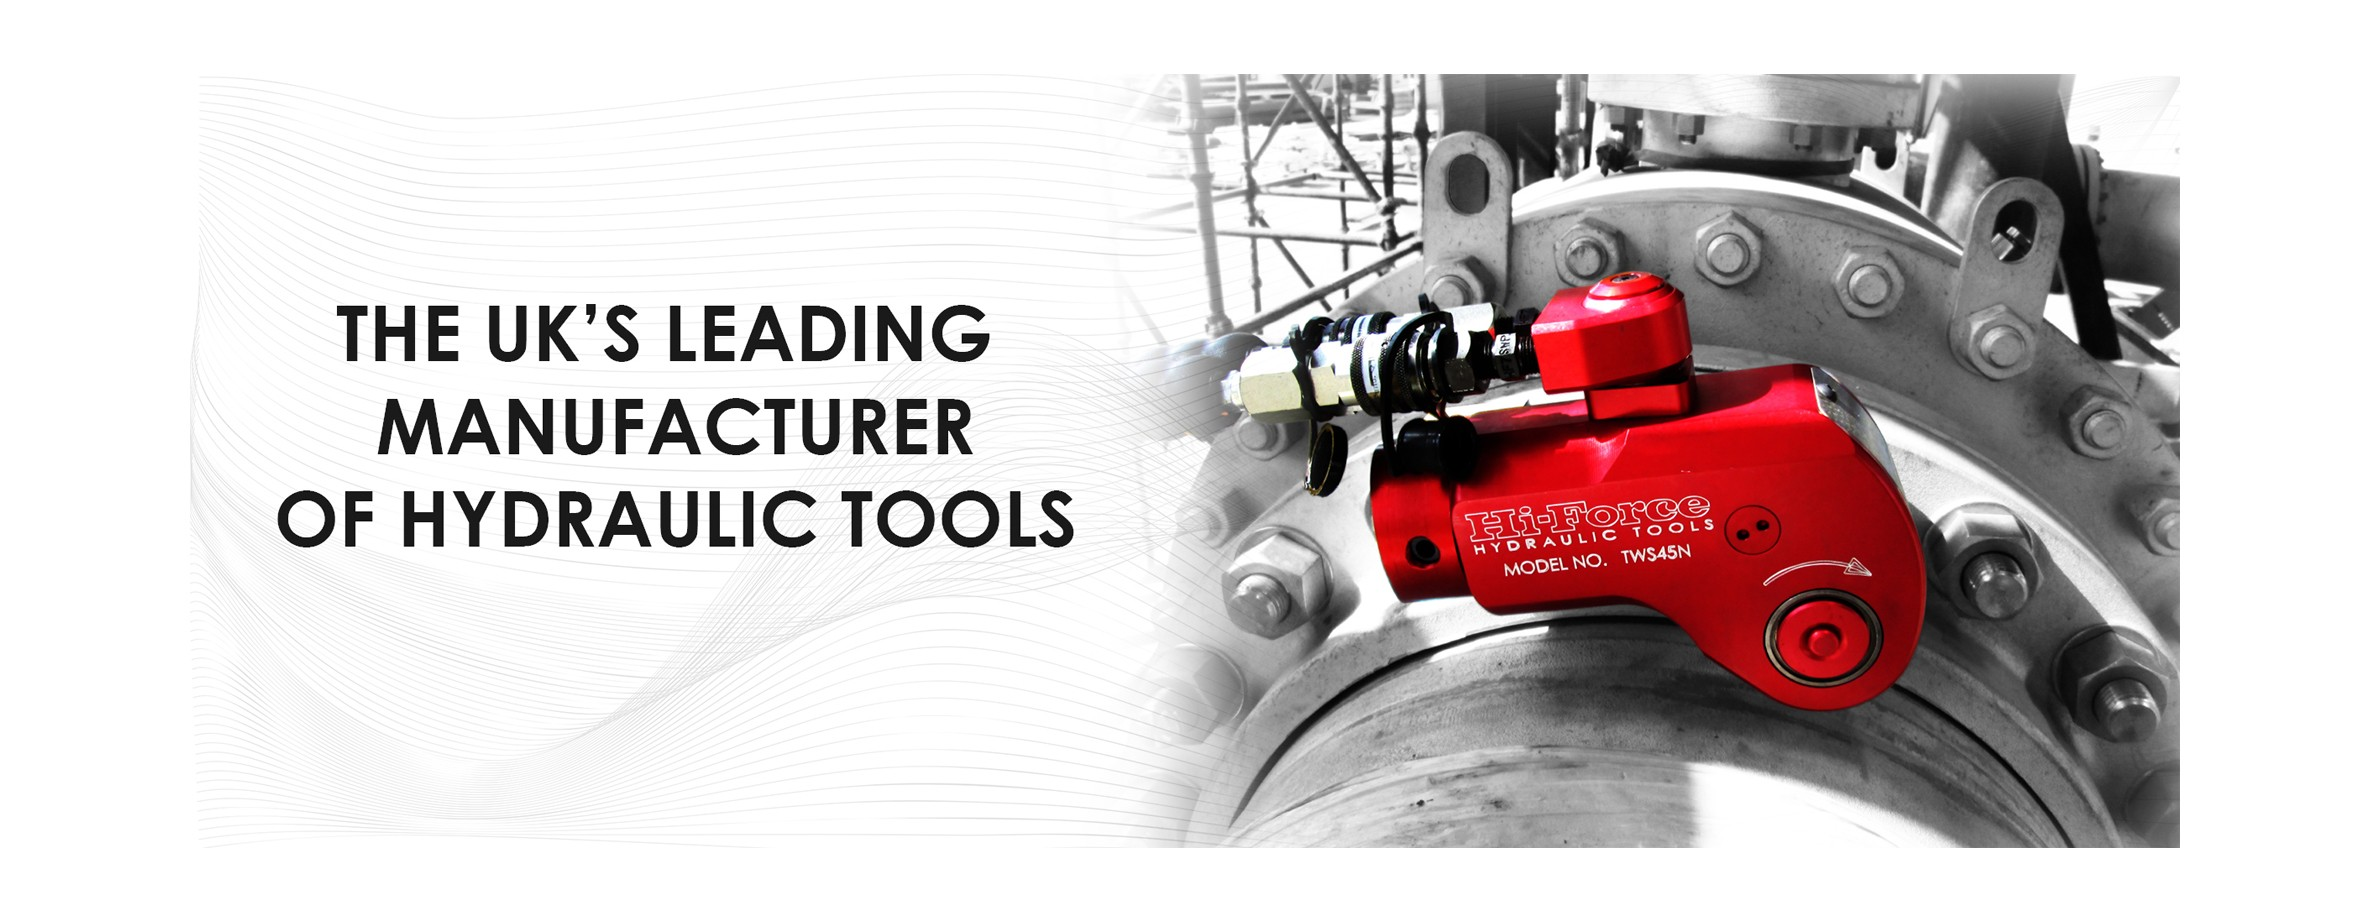 Hi-Force Hydraulic Tools | LinkedIn